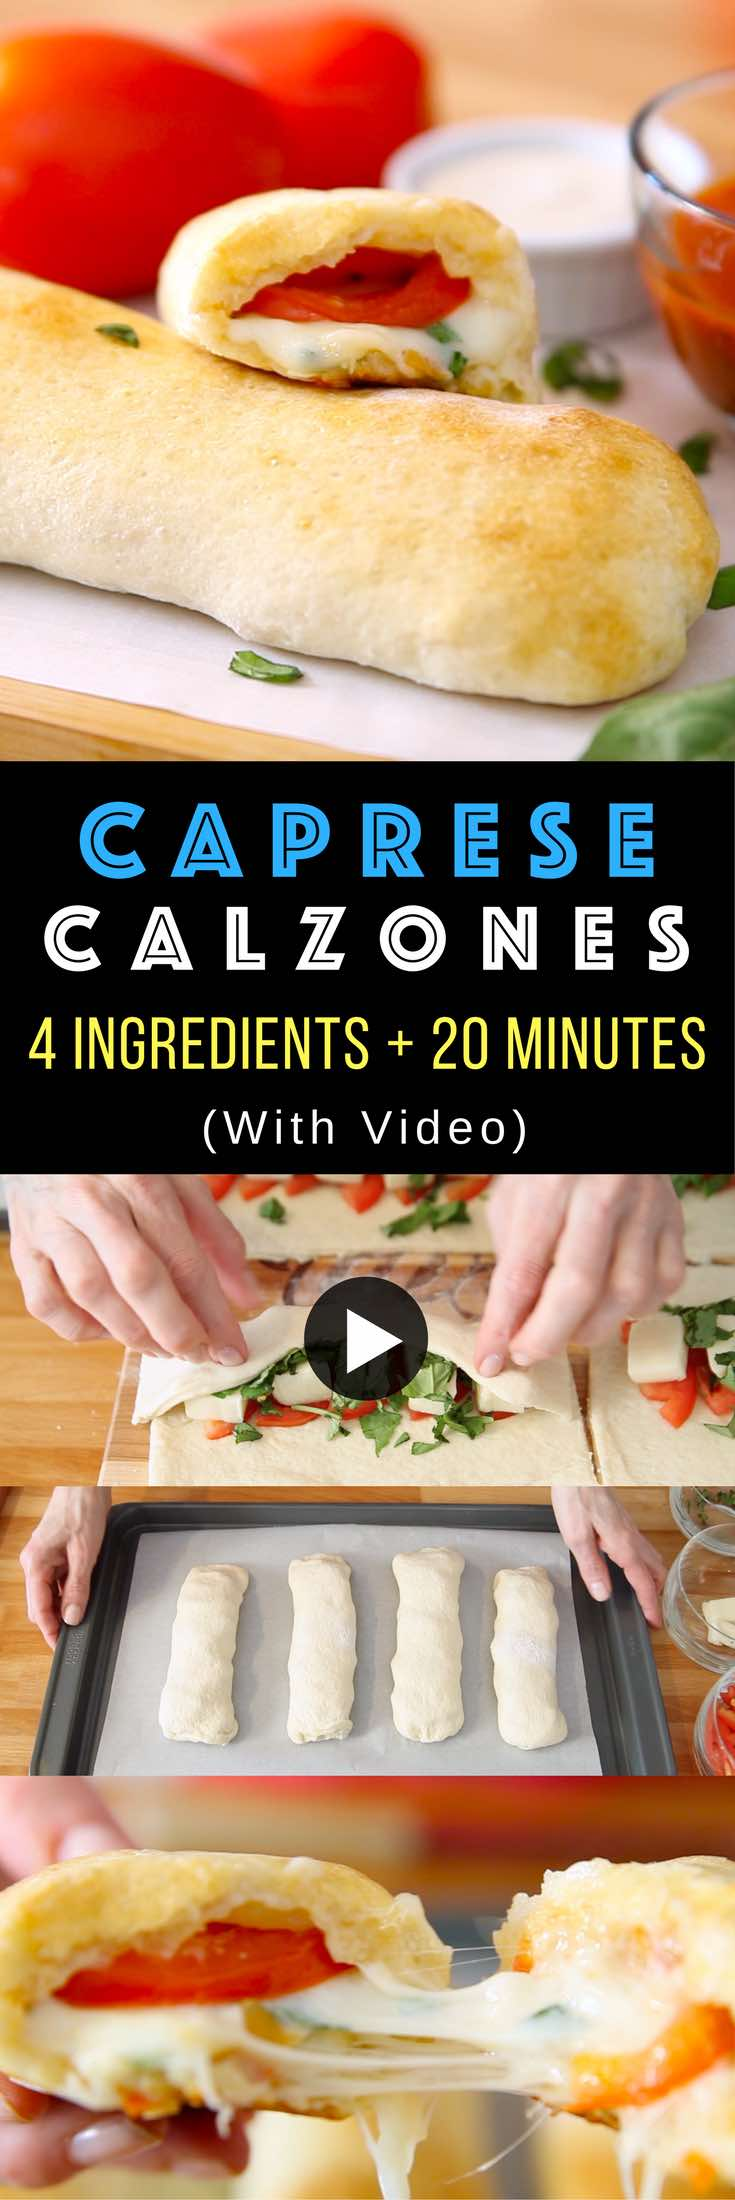 Easy Caprese Calzones – Quick and easy healthy dinner recipe. It comes together in less than 20 minutes. All you need is only 4 ingredients: refrigerated pizza dough, fresh basil, tomatoes and mozzarella cheese. So delicious.  This simple and easy recipe. Vegetarian. Video recipe. #caprese #calzone #4ingredients #quickandeasydinnerrecipes #quickandeasydinnerr #quickandeasymeal #videorecipes #vegetarian #easydinner #easycooking #easyrecipe # #mozzarella #healthydinner